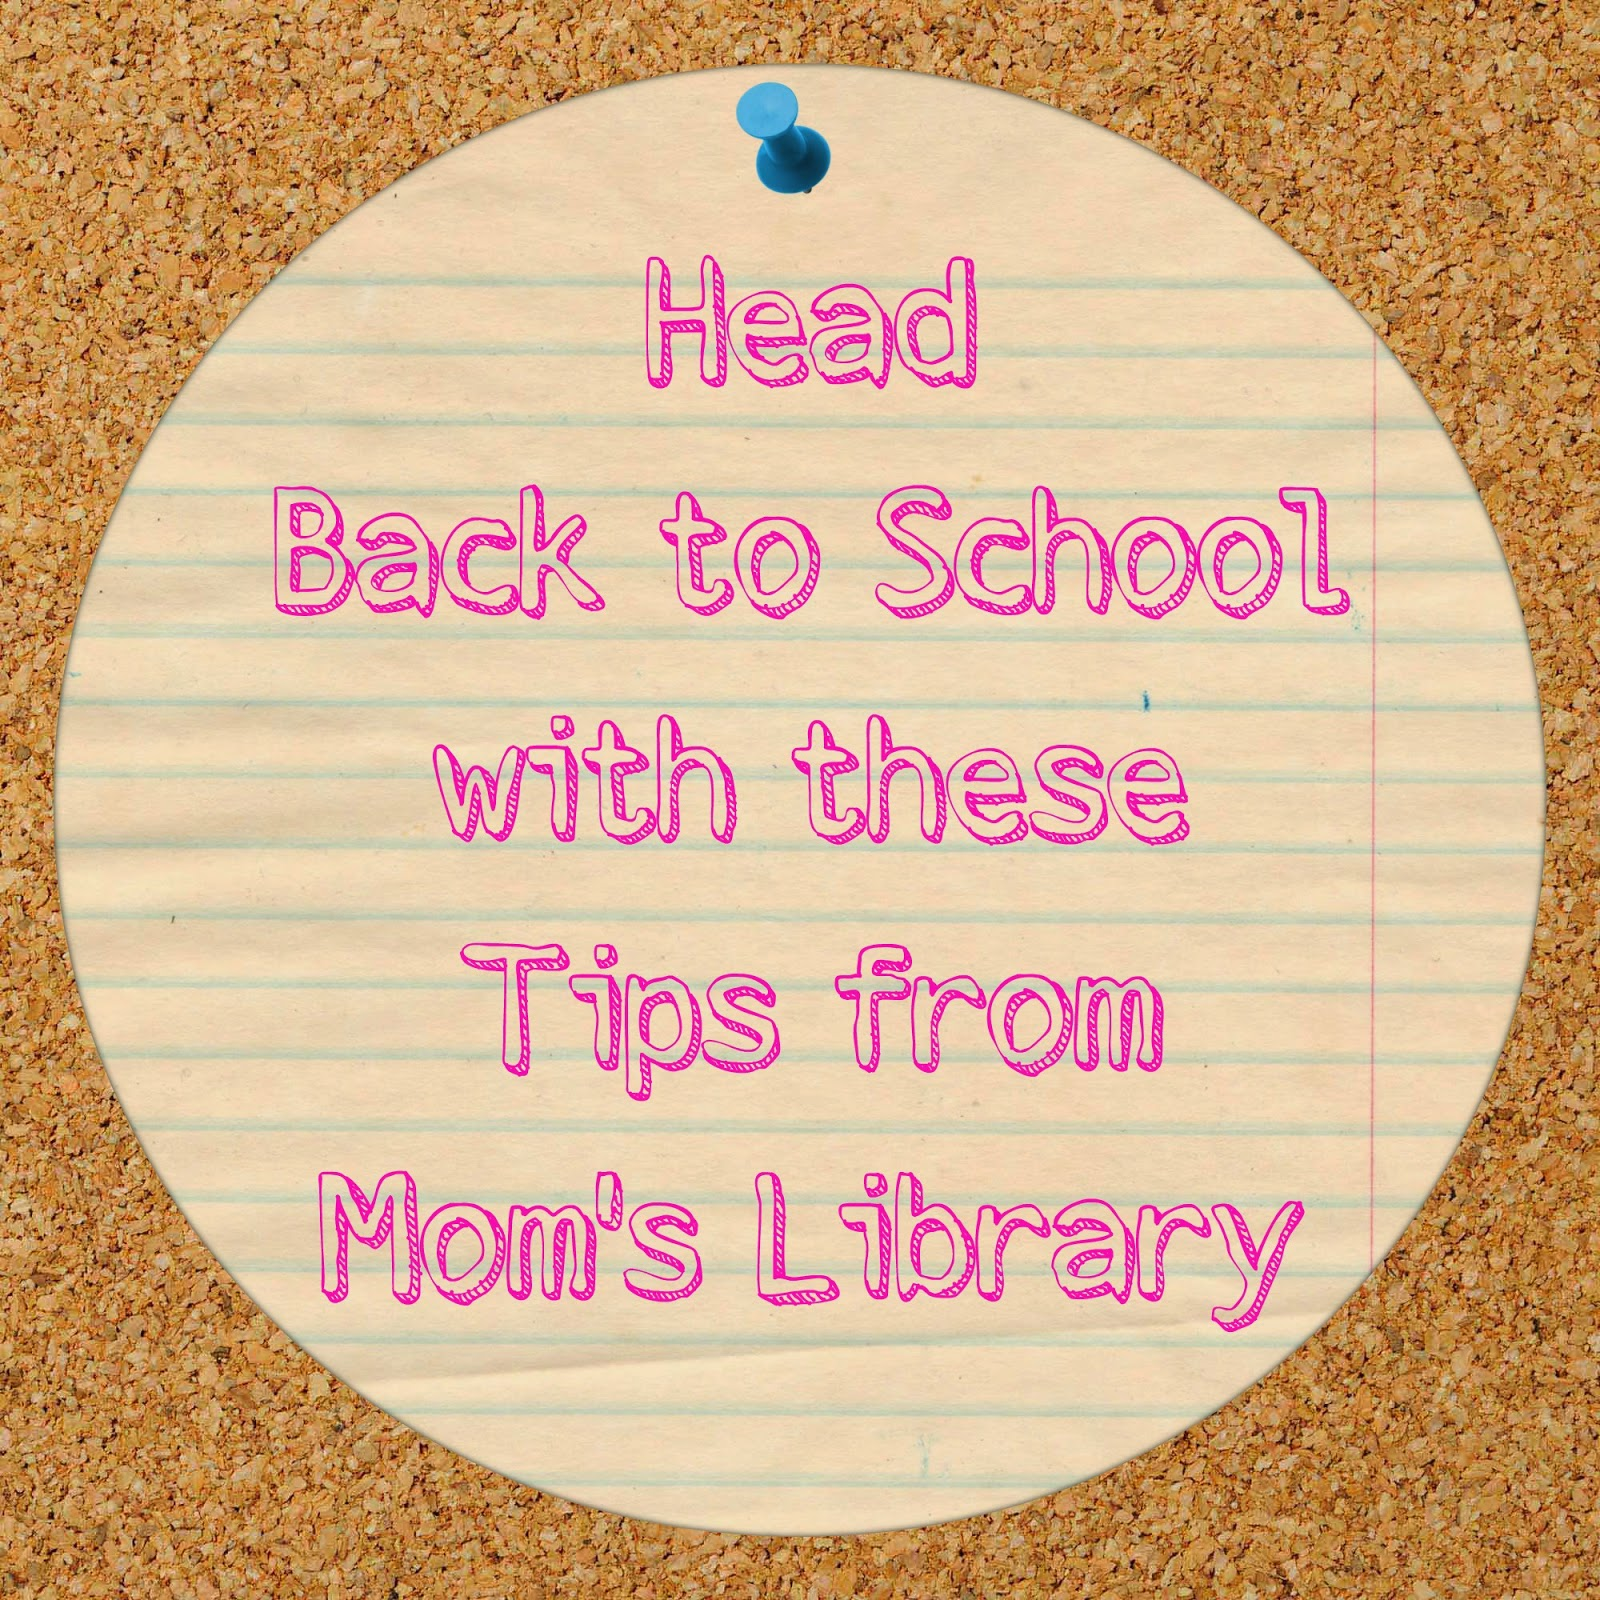 Back to School Tips from Mom's Library